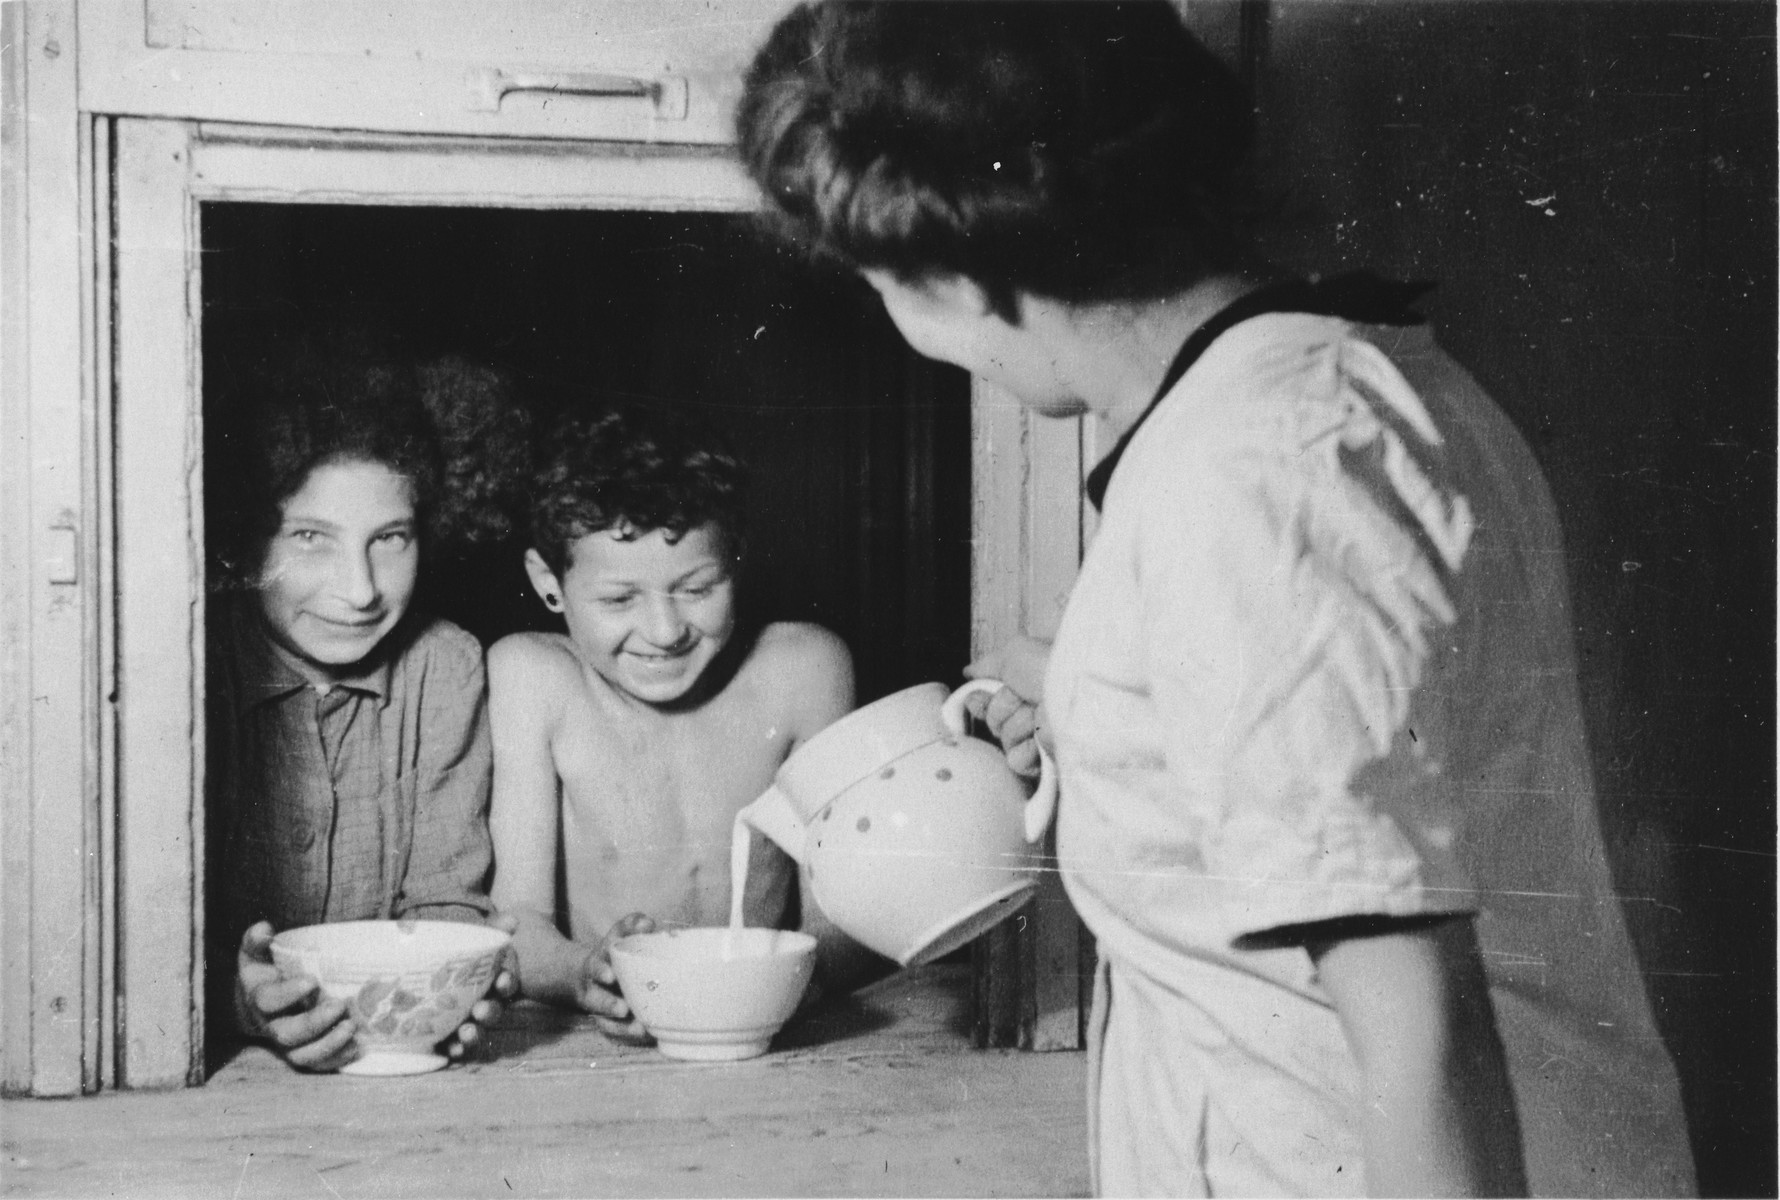 A kitchen worker pours bowls of milk for two children in the Mehoncourt children's home.